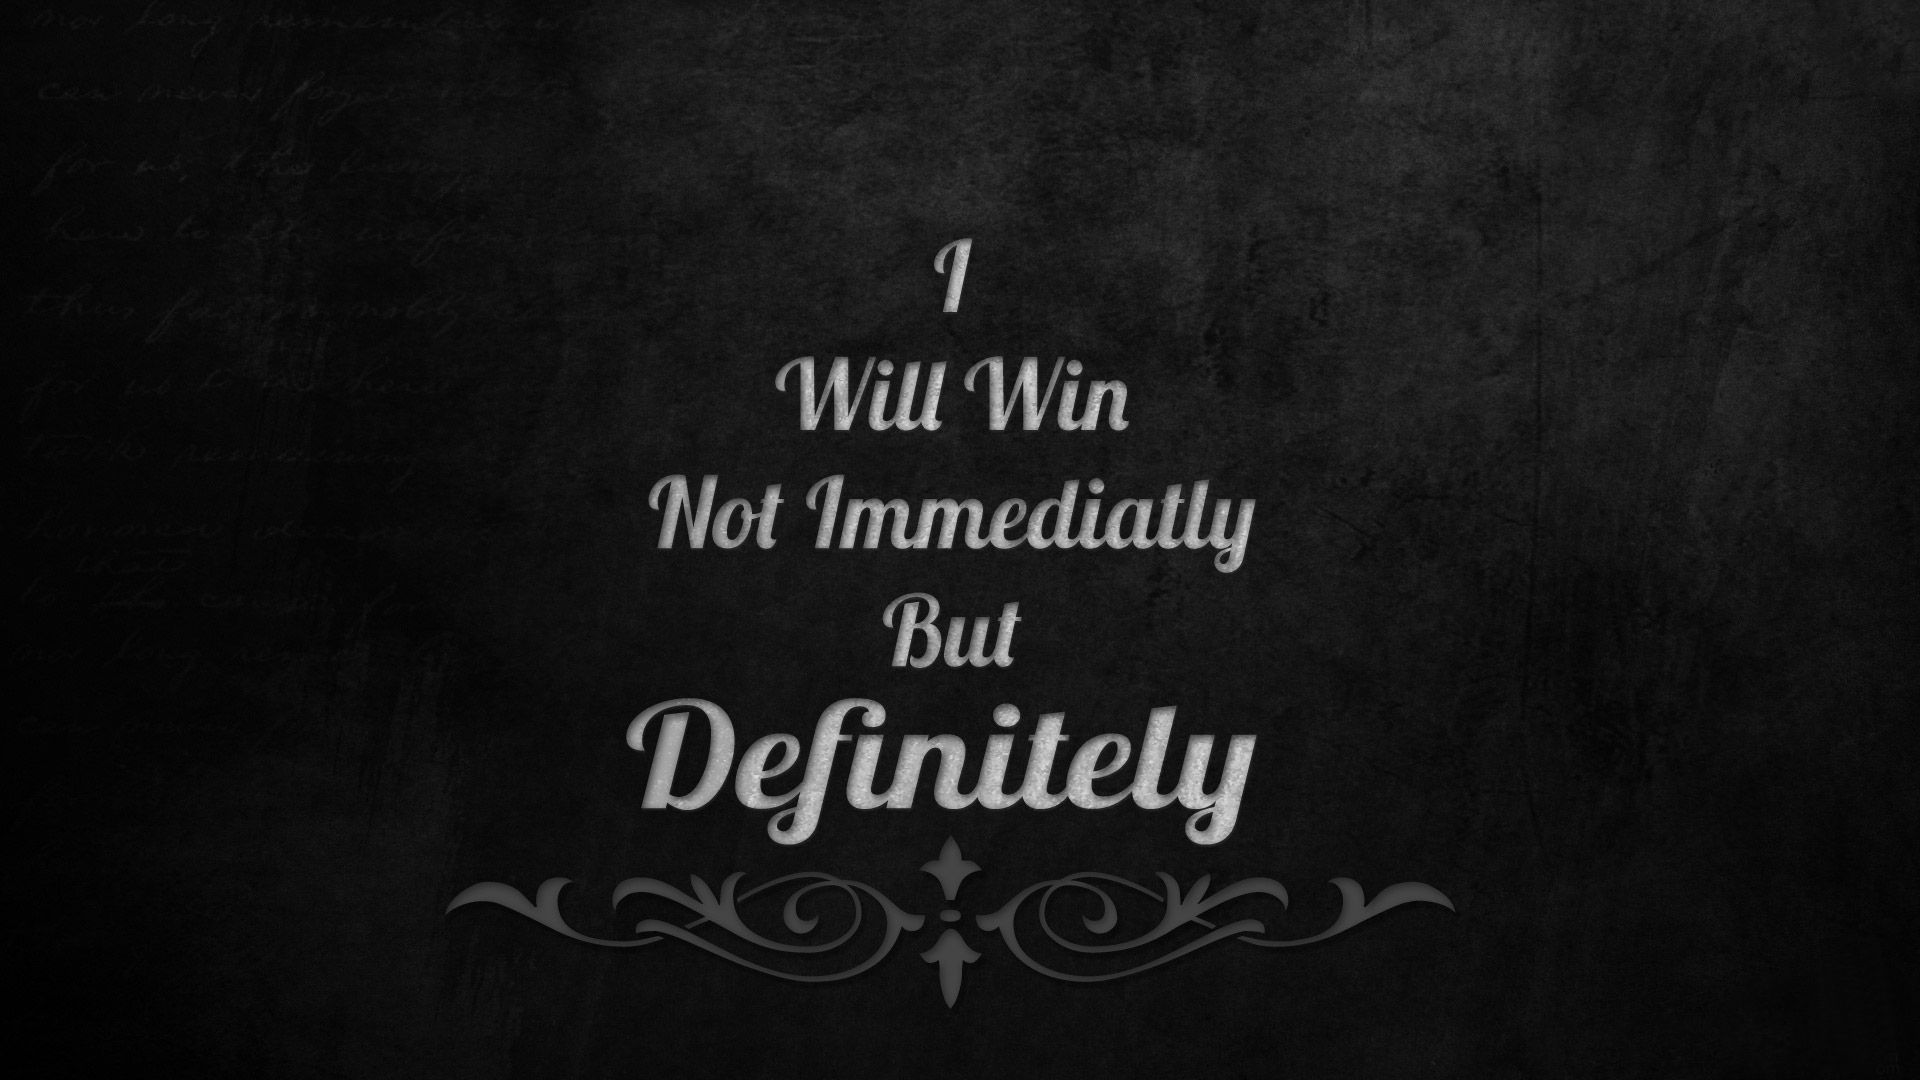 I Will Win Motivational Hd Wallpaper